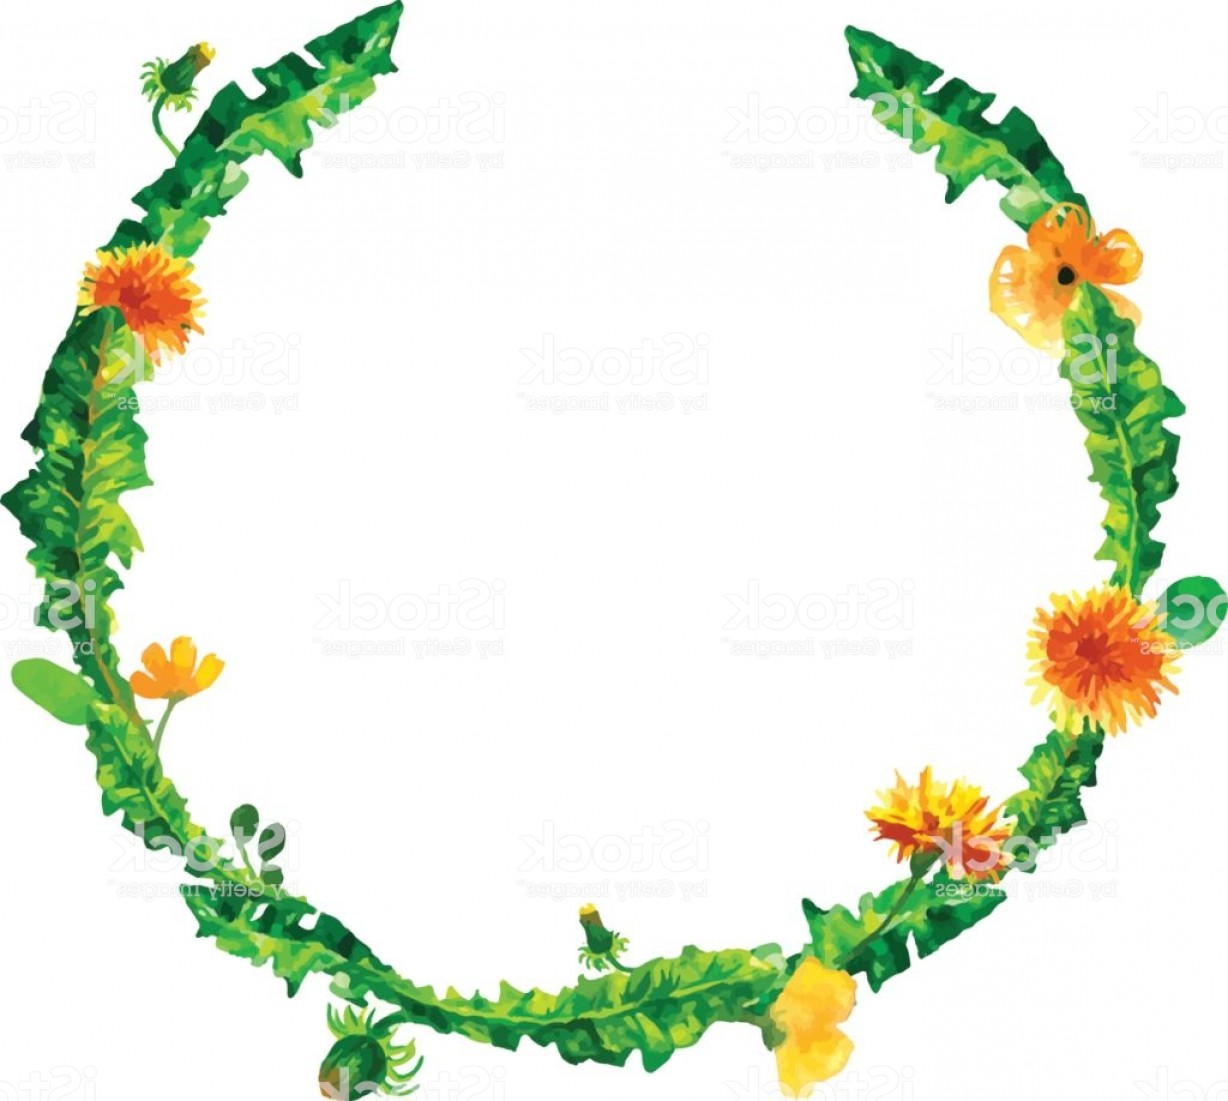 Wreath Circle Logo Vector: Vector Wreath Circle Frame With The Watercolor Flowers Dandelion Fuzzies Hand Drawn Gm